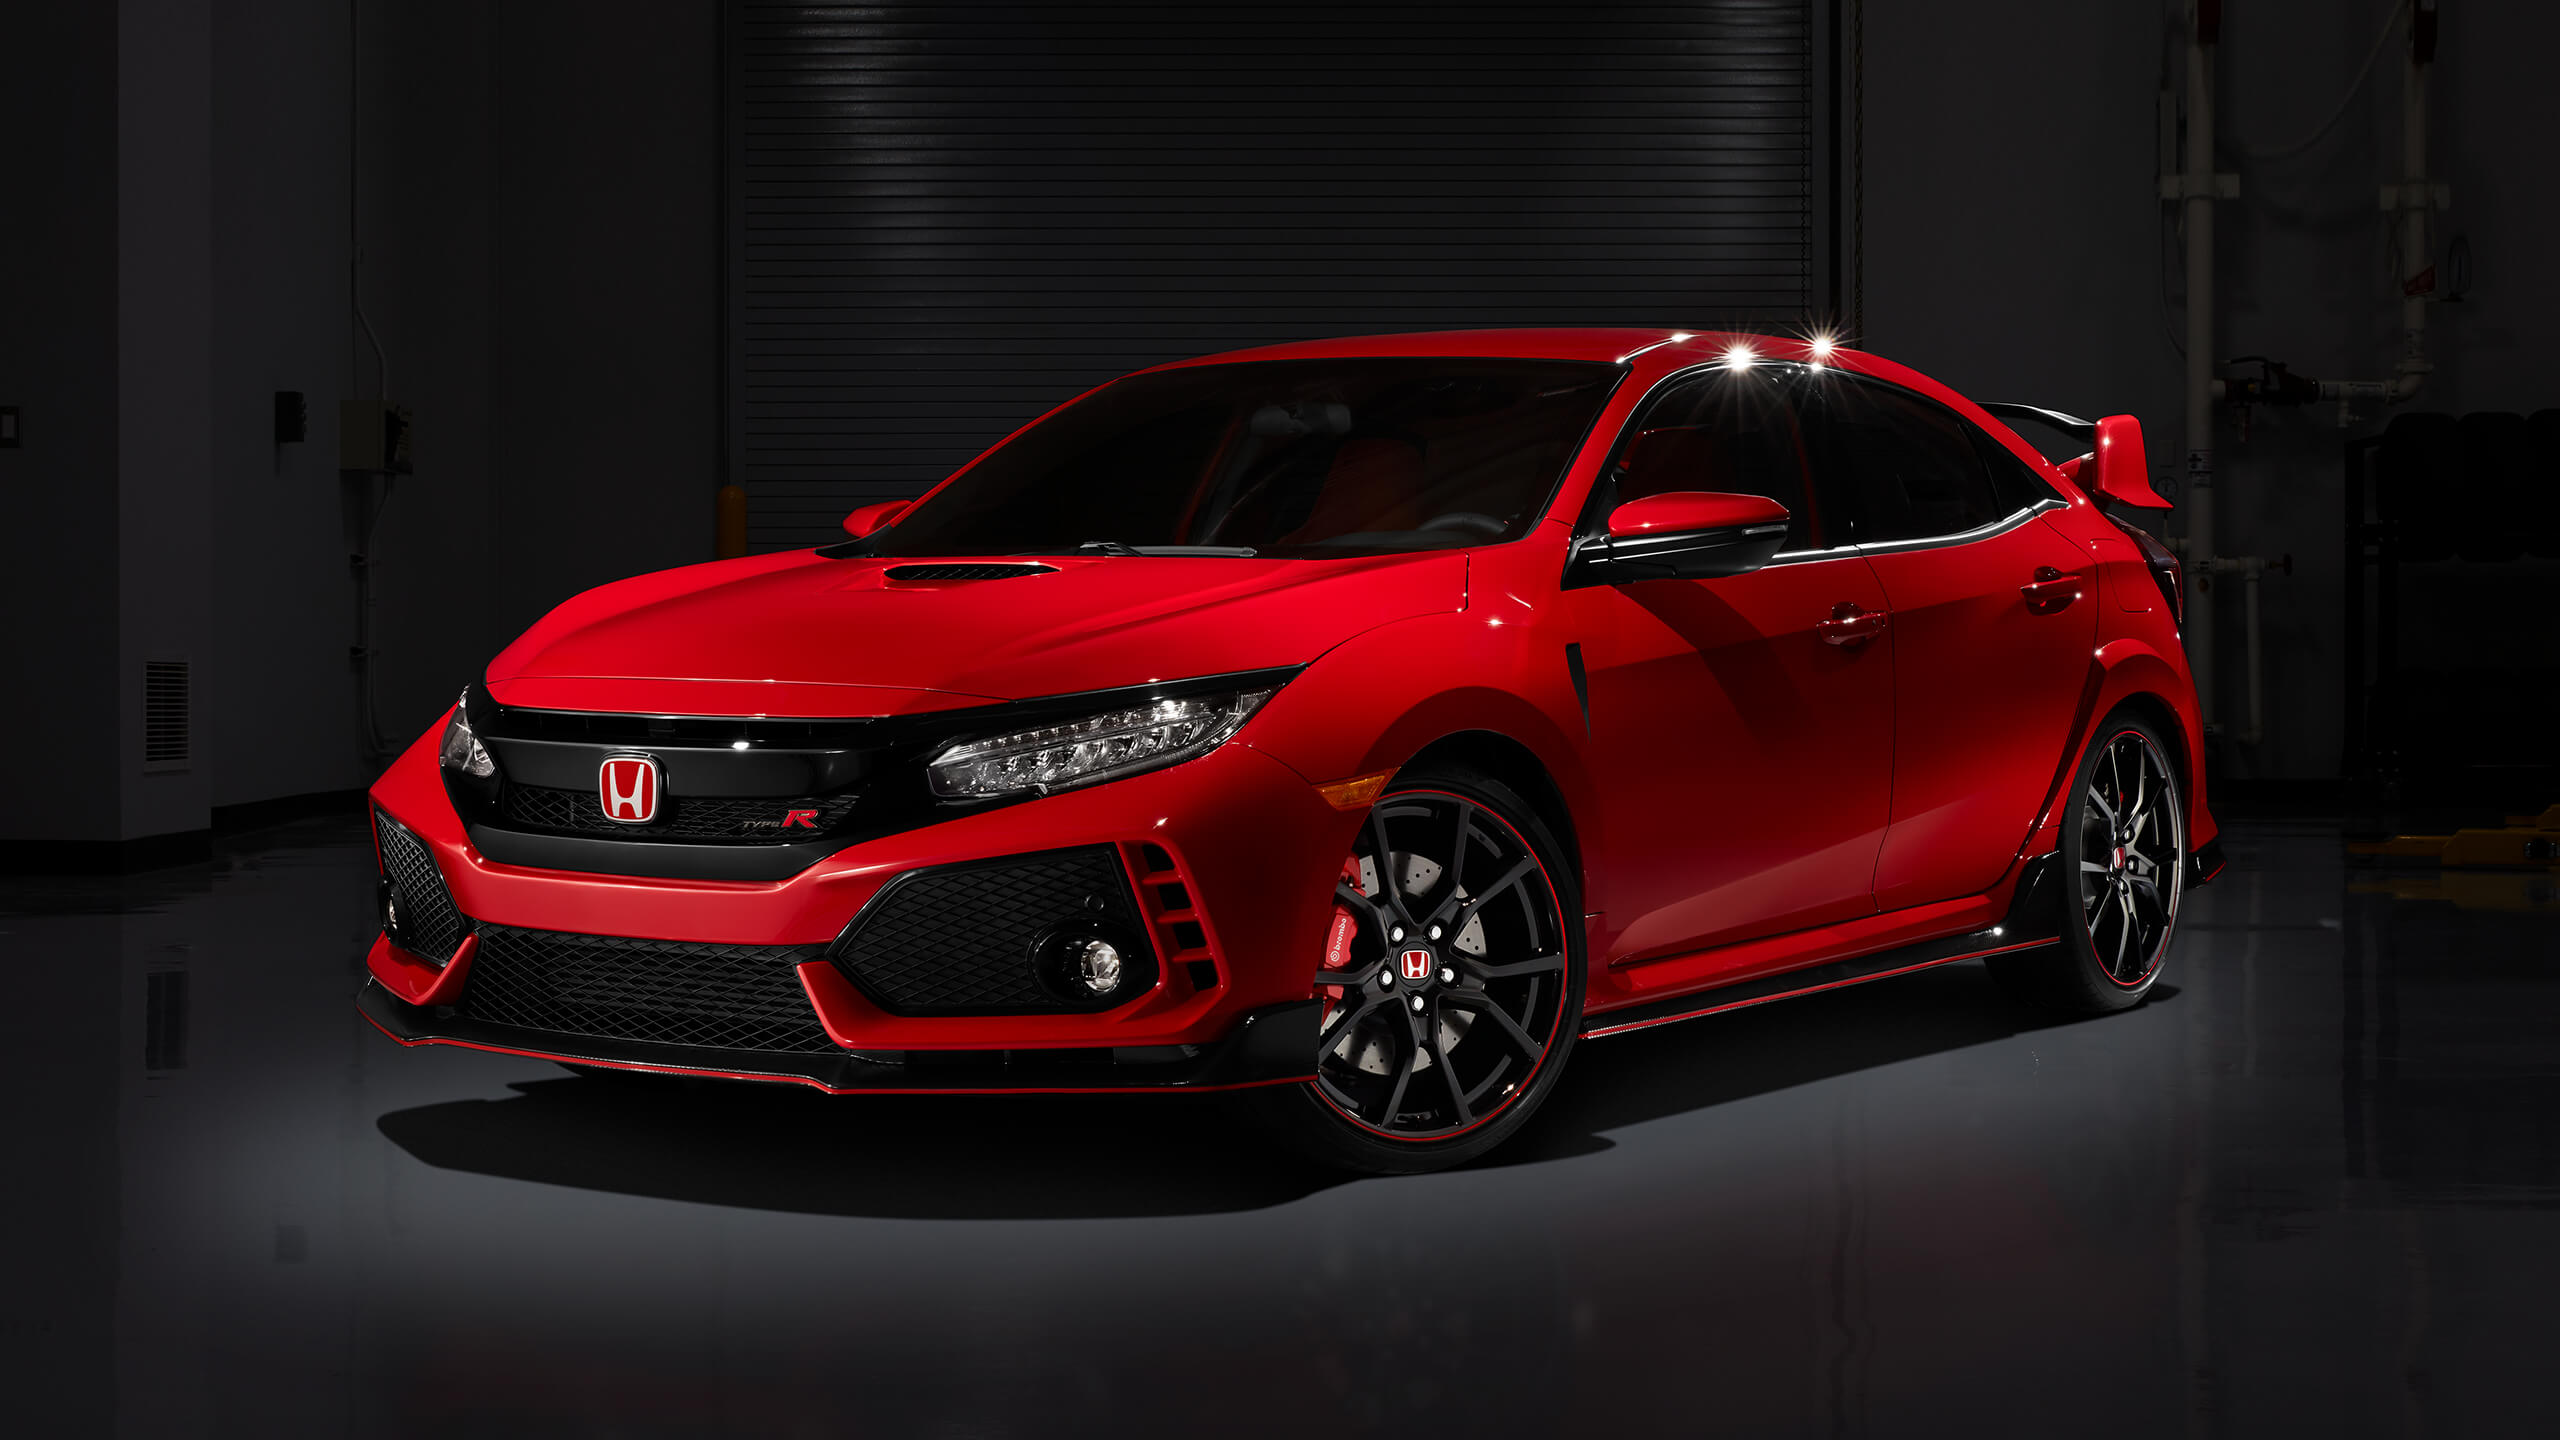 honda civic type r full hd wallpaper and background image